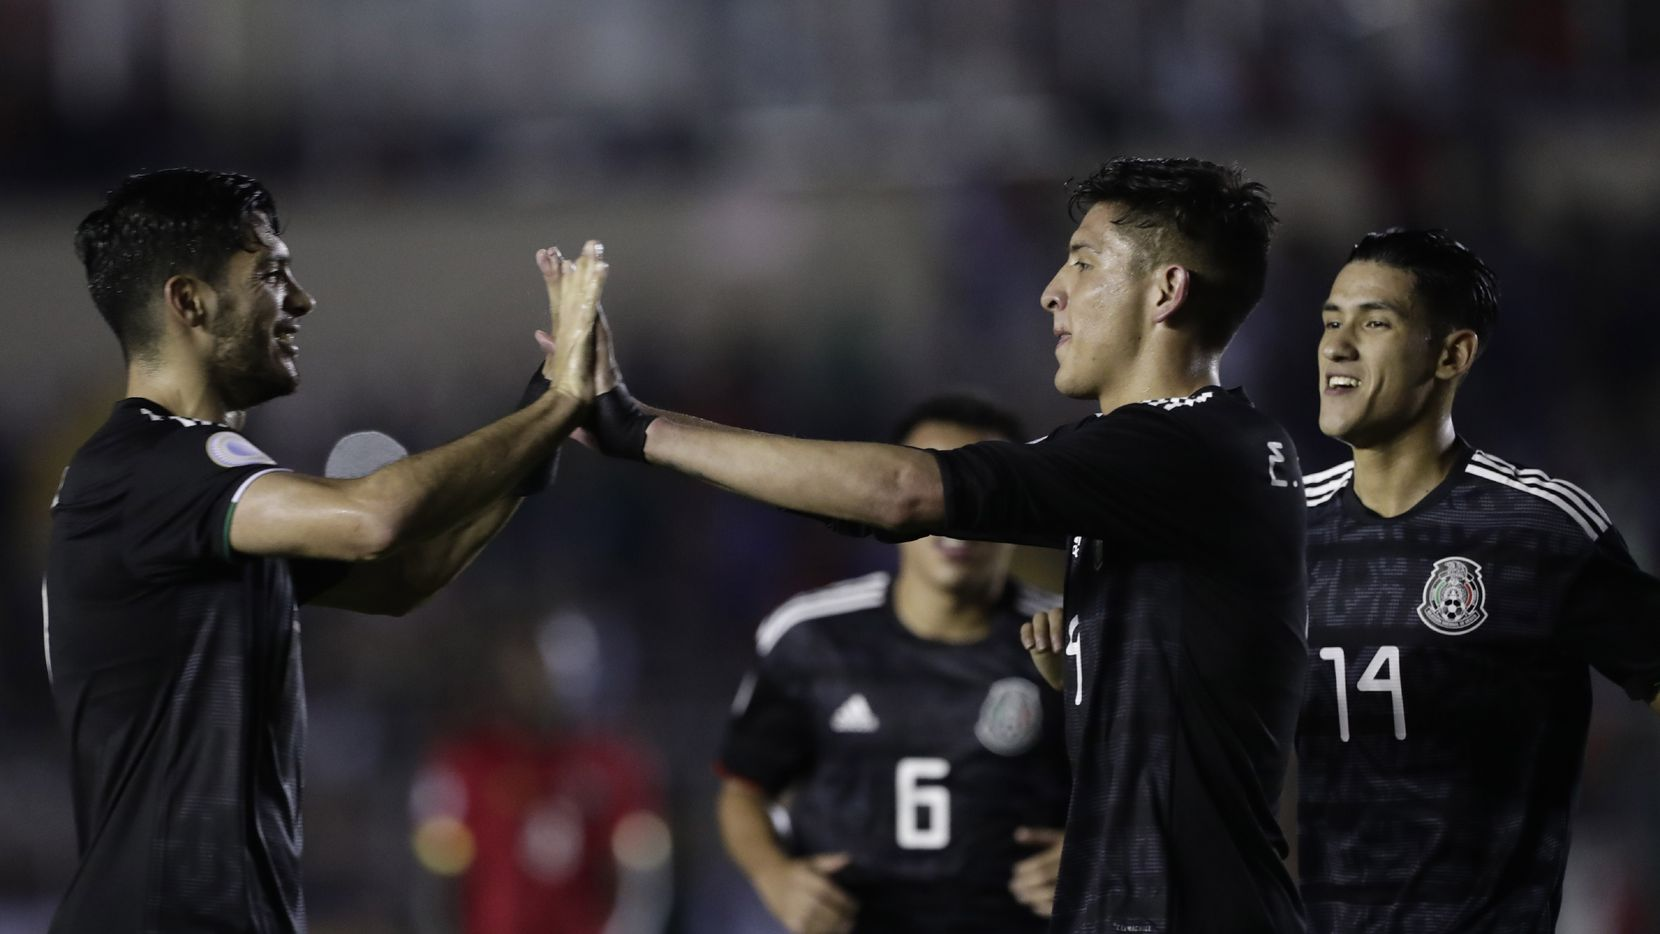 Mexico's Edson Alvarez, second from right, celebrates scoring his side's 2nd goal against Panama with teammates Raul Jimenez, left, and Carlos Antuna during a CONCACAF Nations League soccer match at the Rommel Fernandez stadium in Panama City, Friday, Nov. 15, 2019. (AP Photo/Arnulfo Franco)